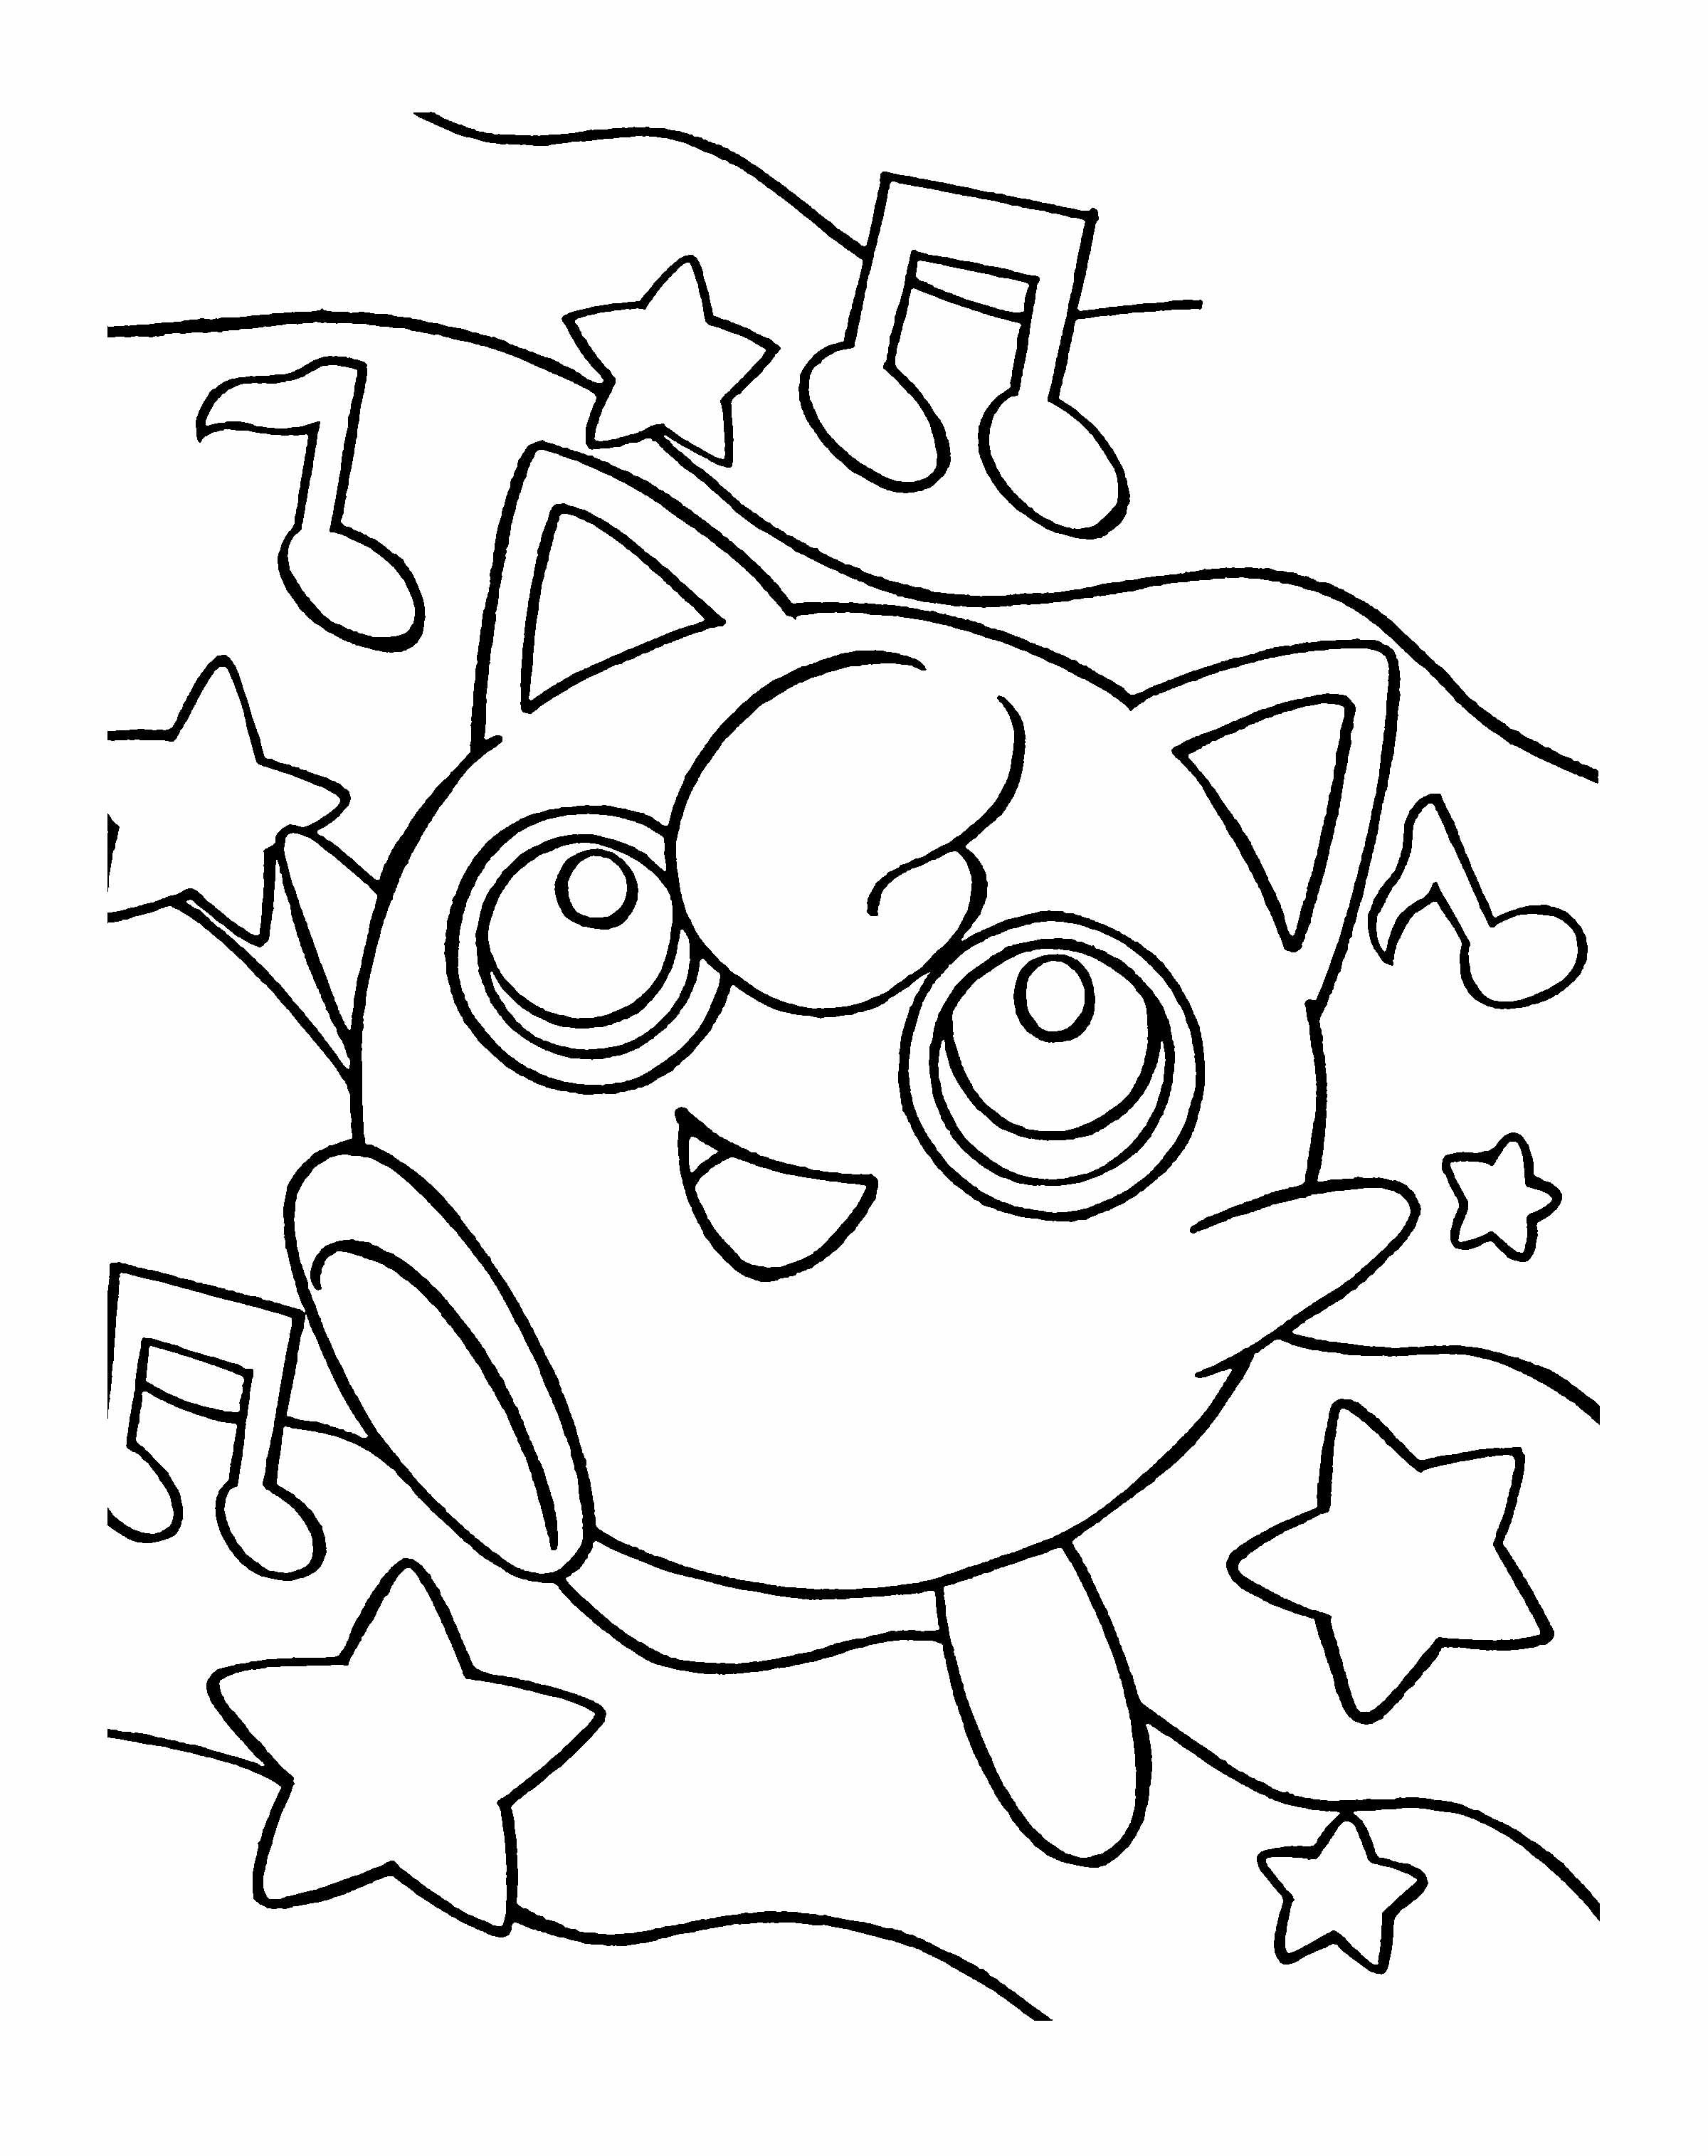 Small Pokemon Unleashed The Power Of Singing Coloring Page